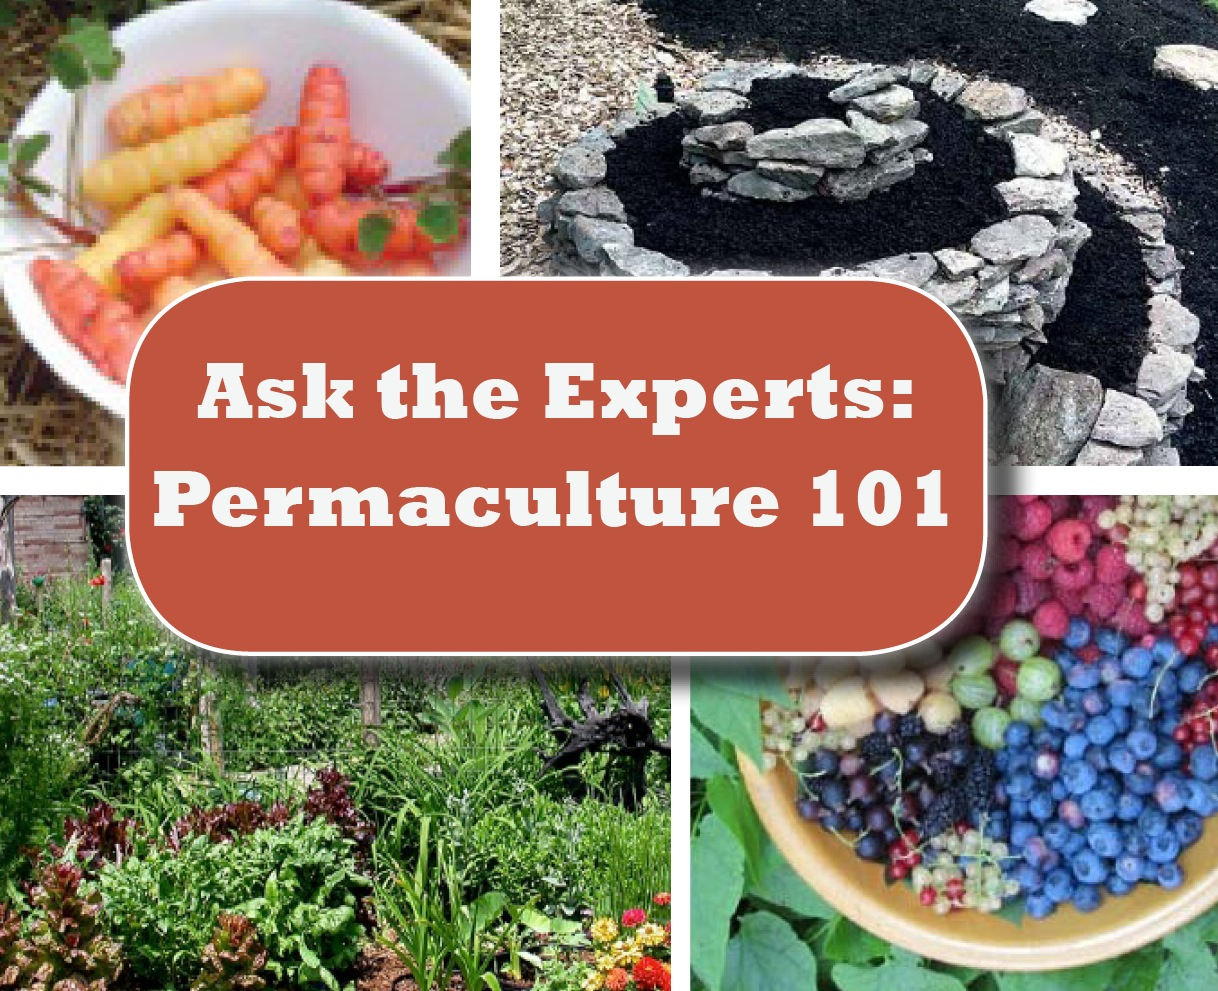 Permaculture 101: Ask the Experts